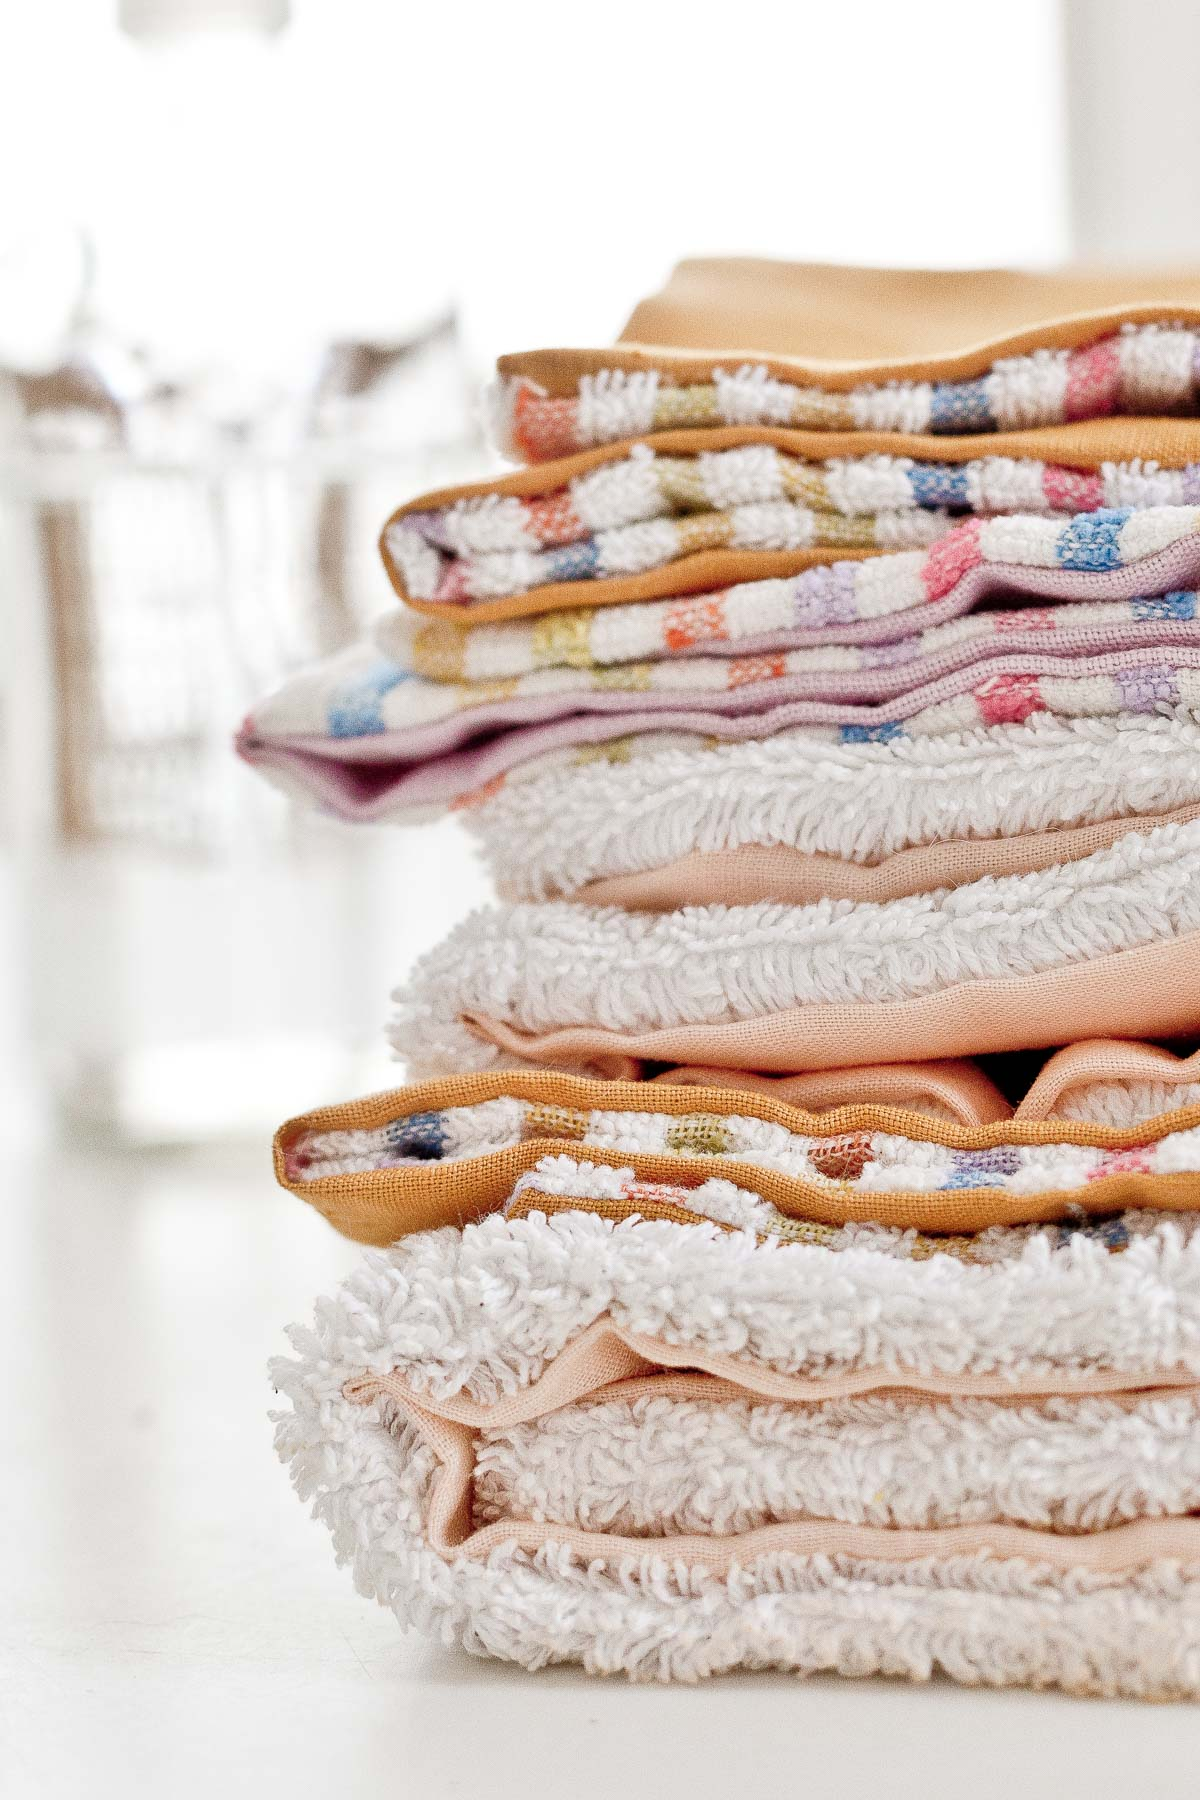 Stacked DIY unpaper towels using colorful fabric scraps and terrycloth.